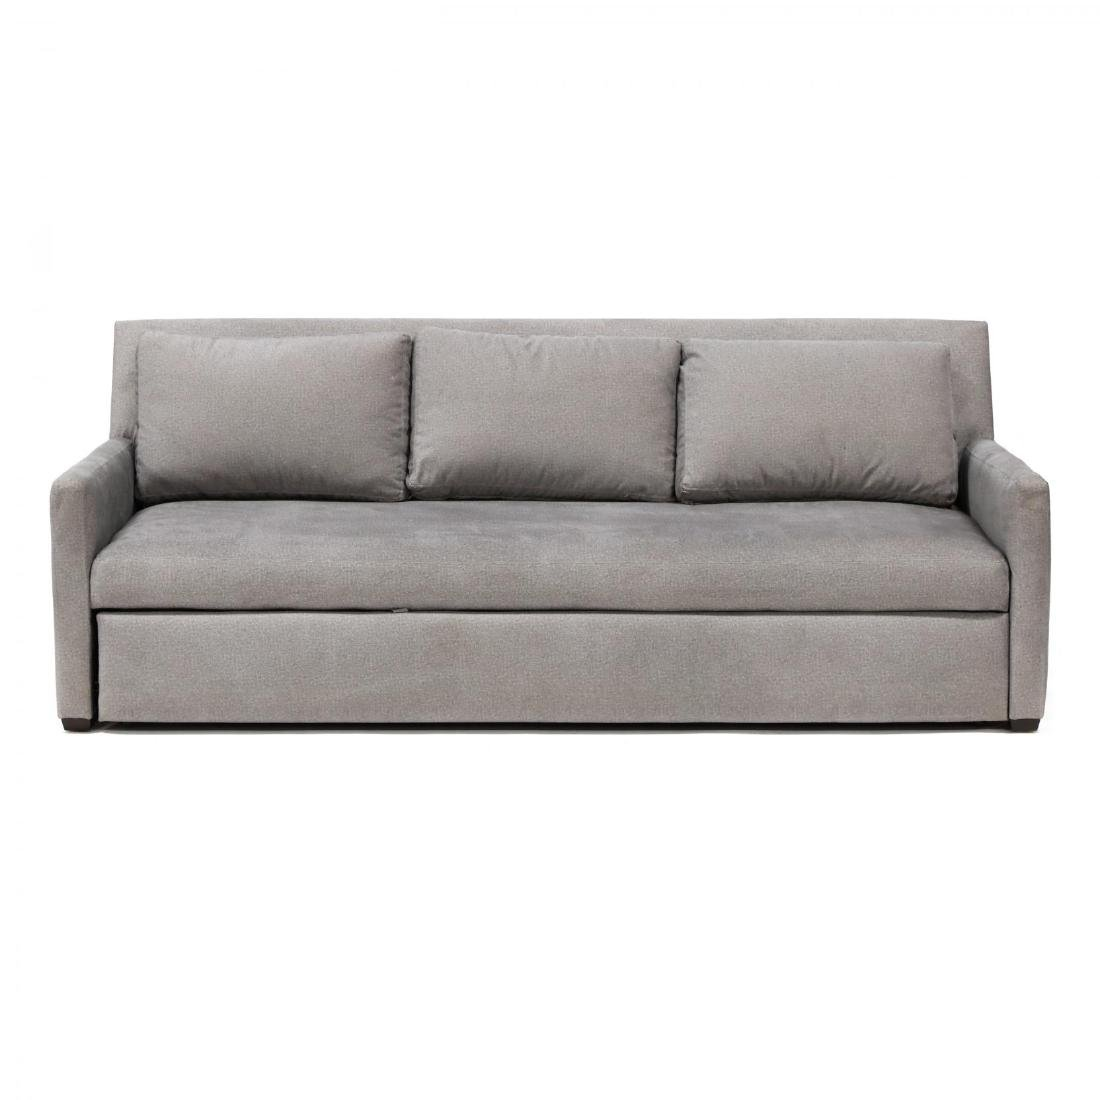 Lee, Contemporary Upholstered Sleeper Sofa